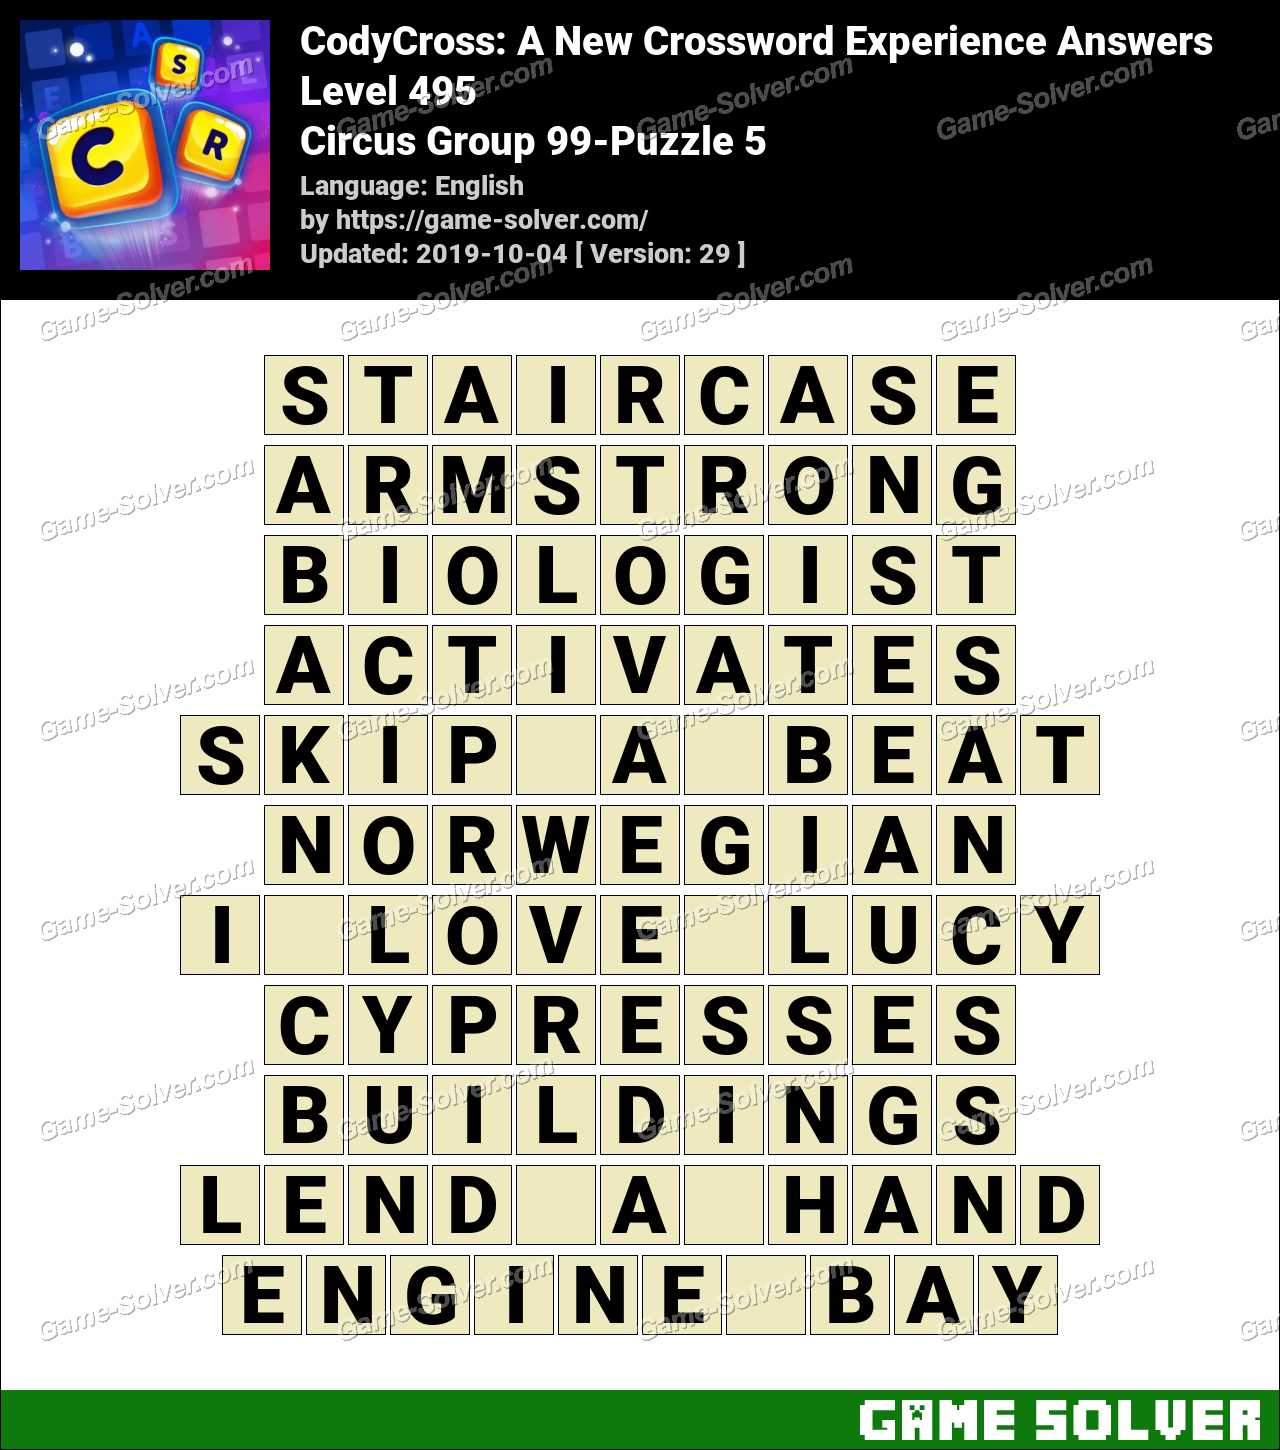 CodyCross Circus Group 99-Puzzle 5 Answers